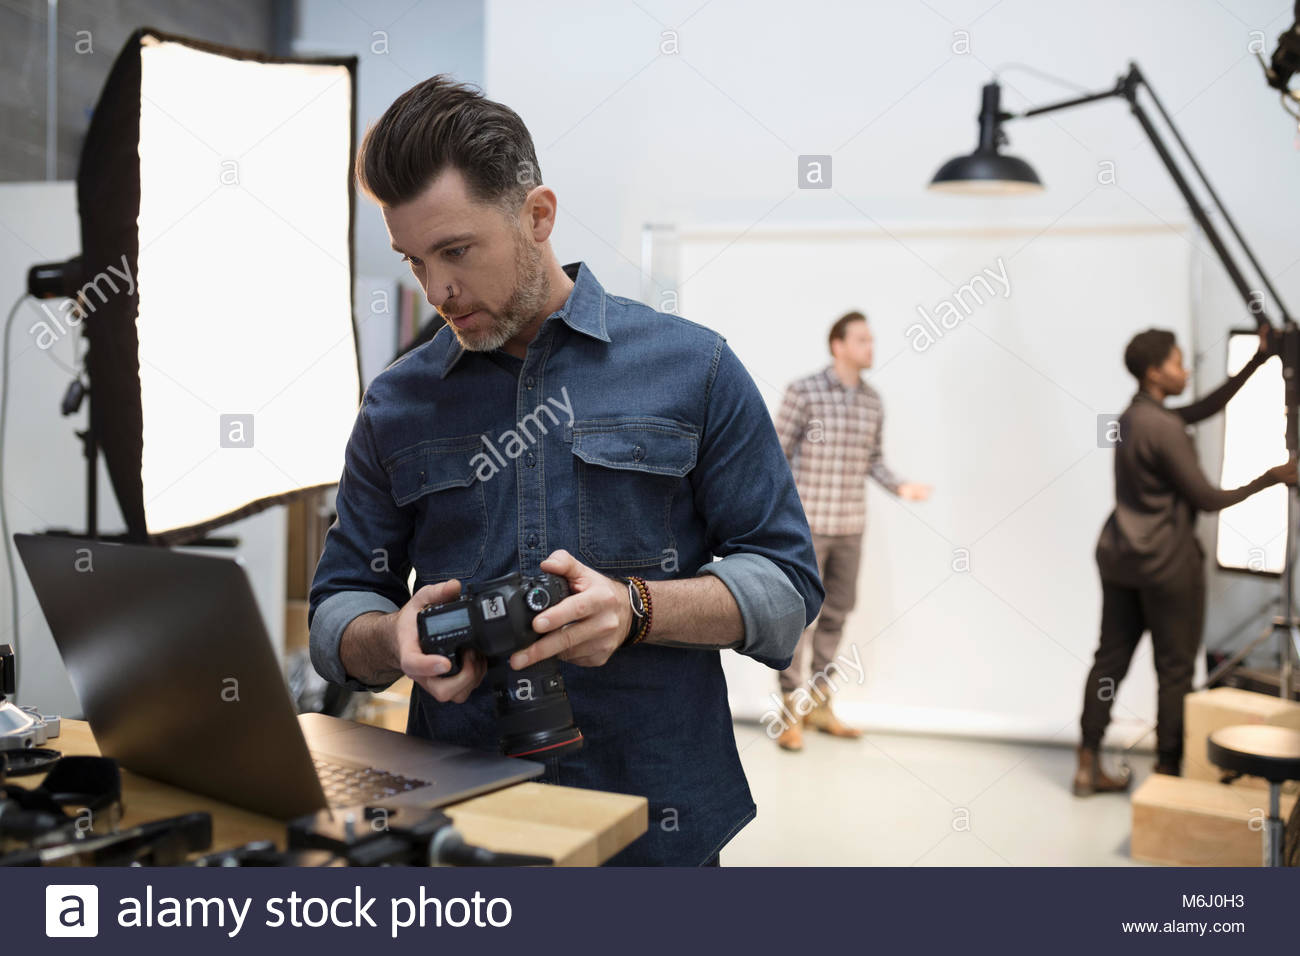 Male photographer with digital camera using laptop at photo shoot in studio Stock Photo